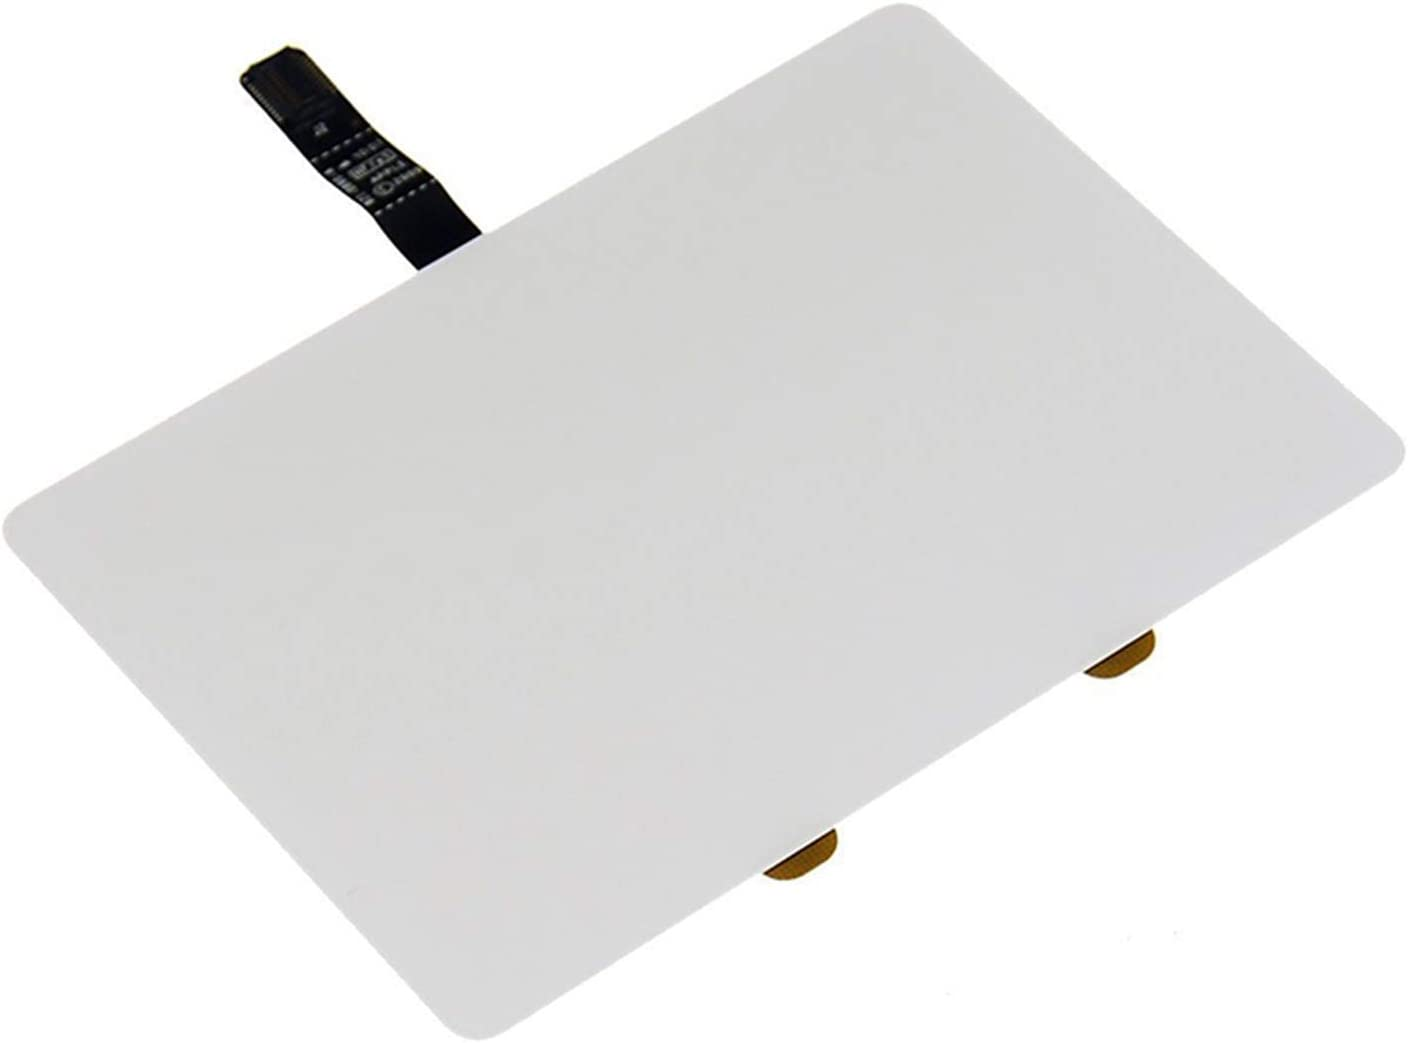 Bfenown Replacement Trackpad Touchpad for MacBook Pro Unibody 13 Early mid Late 2009 2010 2011 2012 A1278 MB990LL//A MB991LL//A MC724LL//A MC374LL//A MC375LL//A MD102LL//A MC700LL//A 821-0831-A,821-1254-A